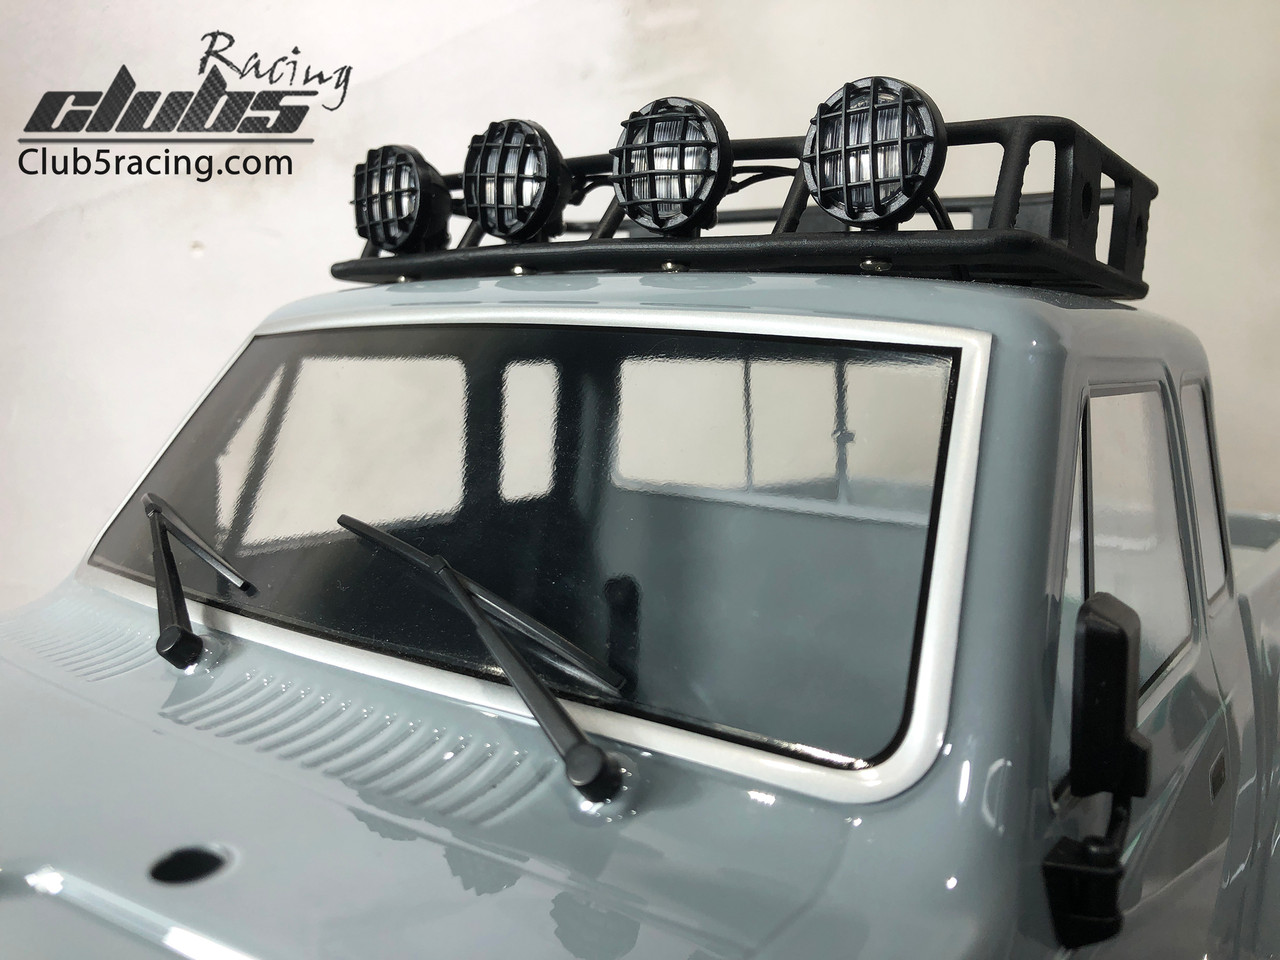 Roof Rack w/ 4 Spot Light for Element RC Enduro Sendero ( Led included, 6V )